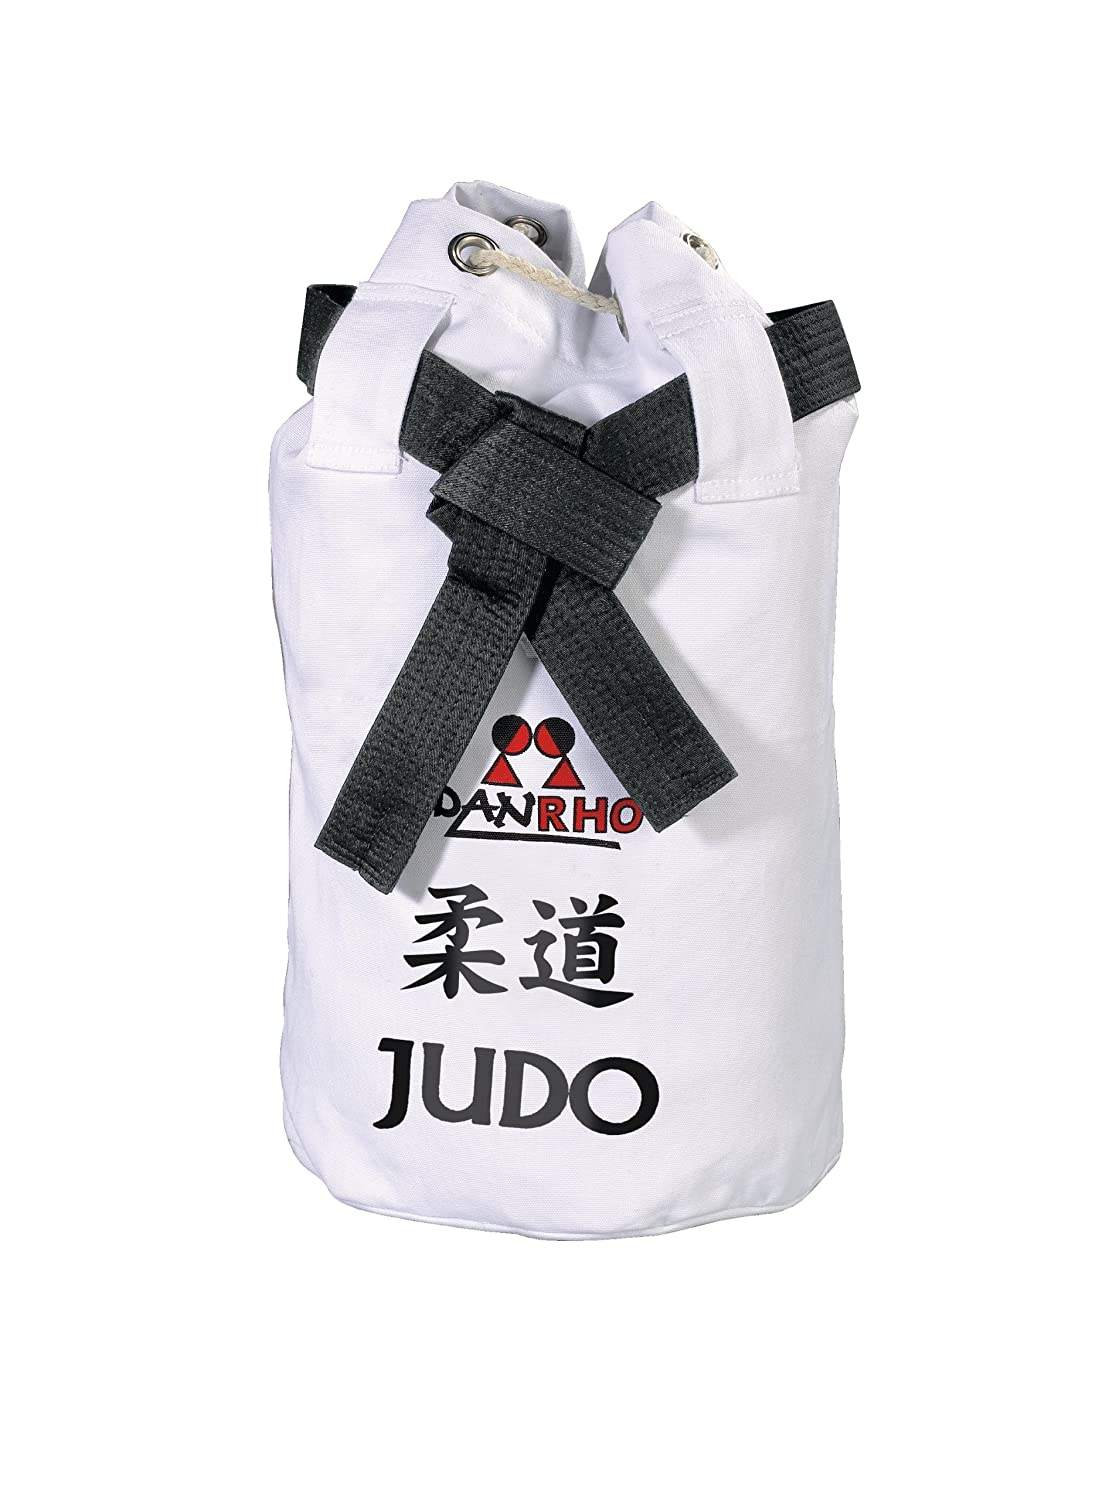 DanRho Dojoline 226018010 Children's Judo Canvas Bag White 40 x 40 x 45 cm